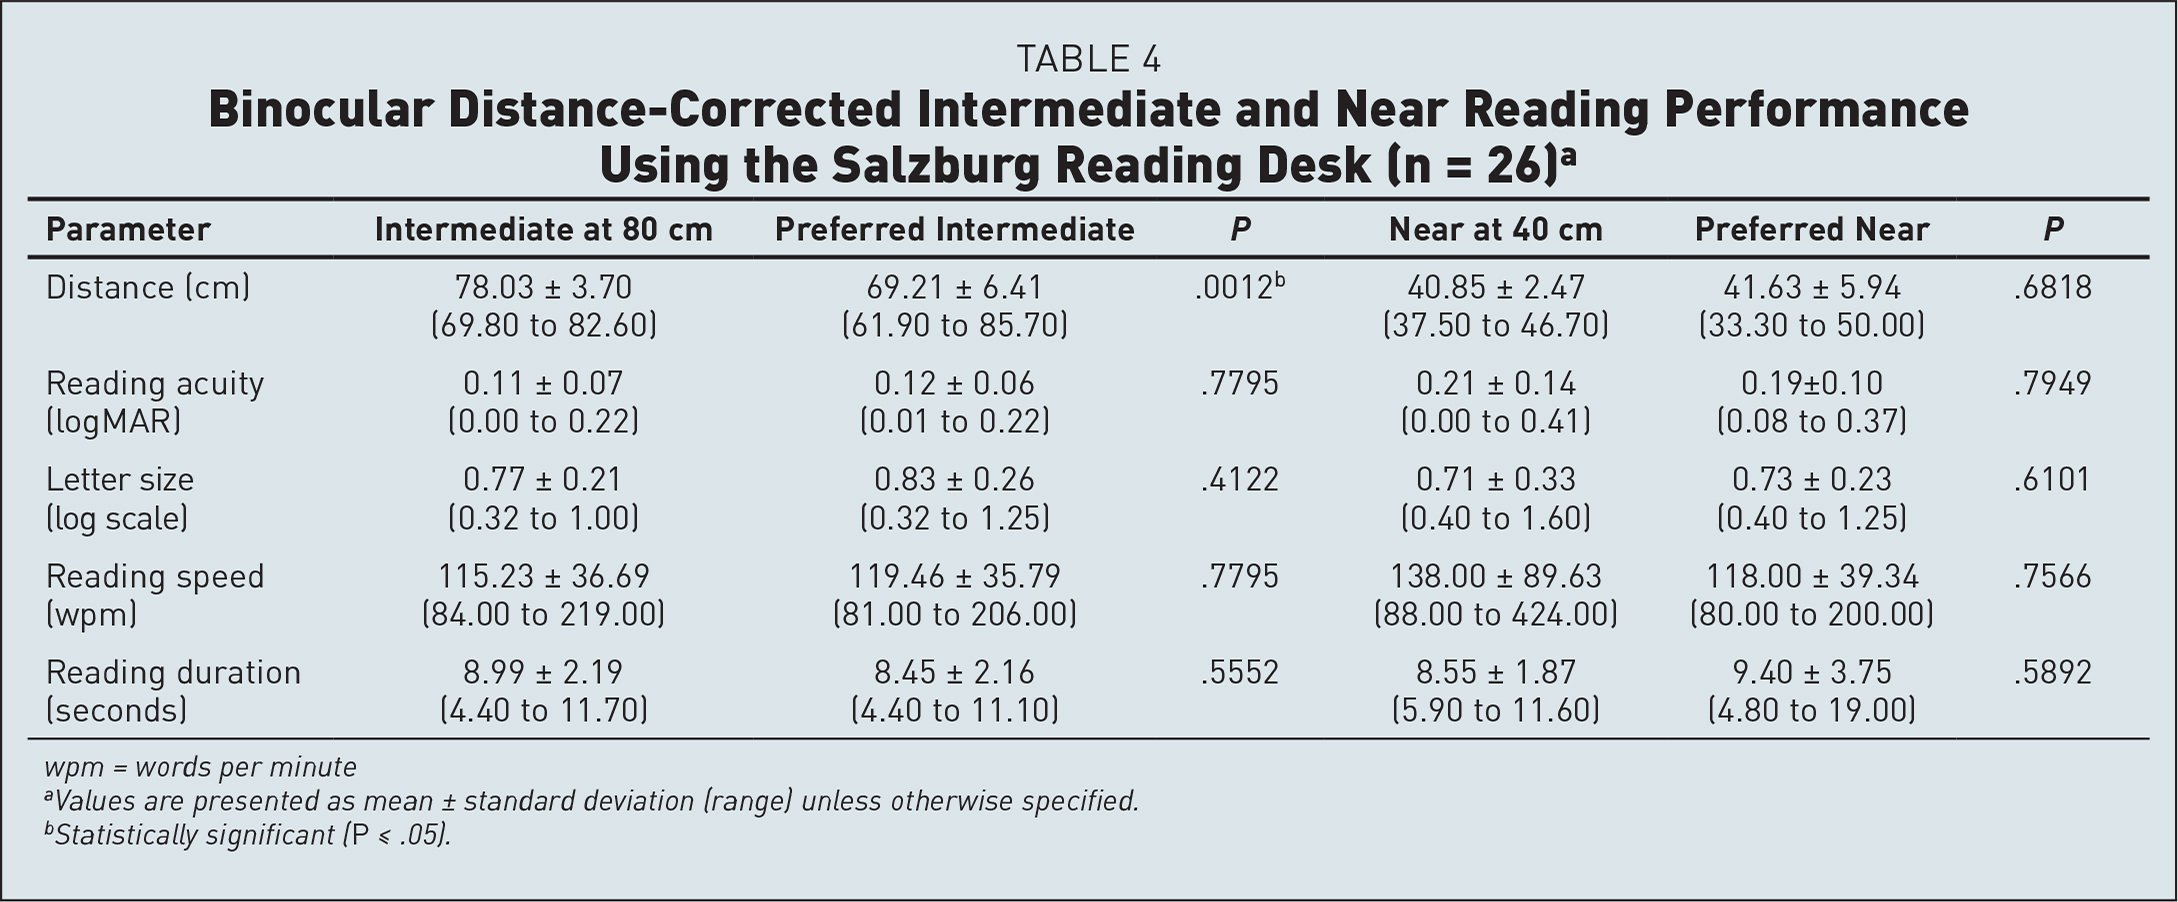 Binocular Distance-Corrected Intermediate and Near Reading Performance Using the Salzburg Reading Desk (n = 26)a